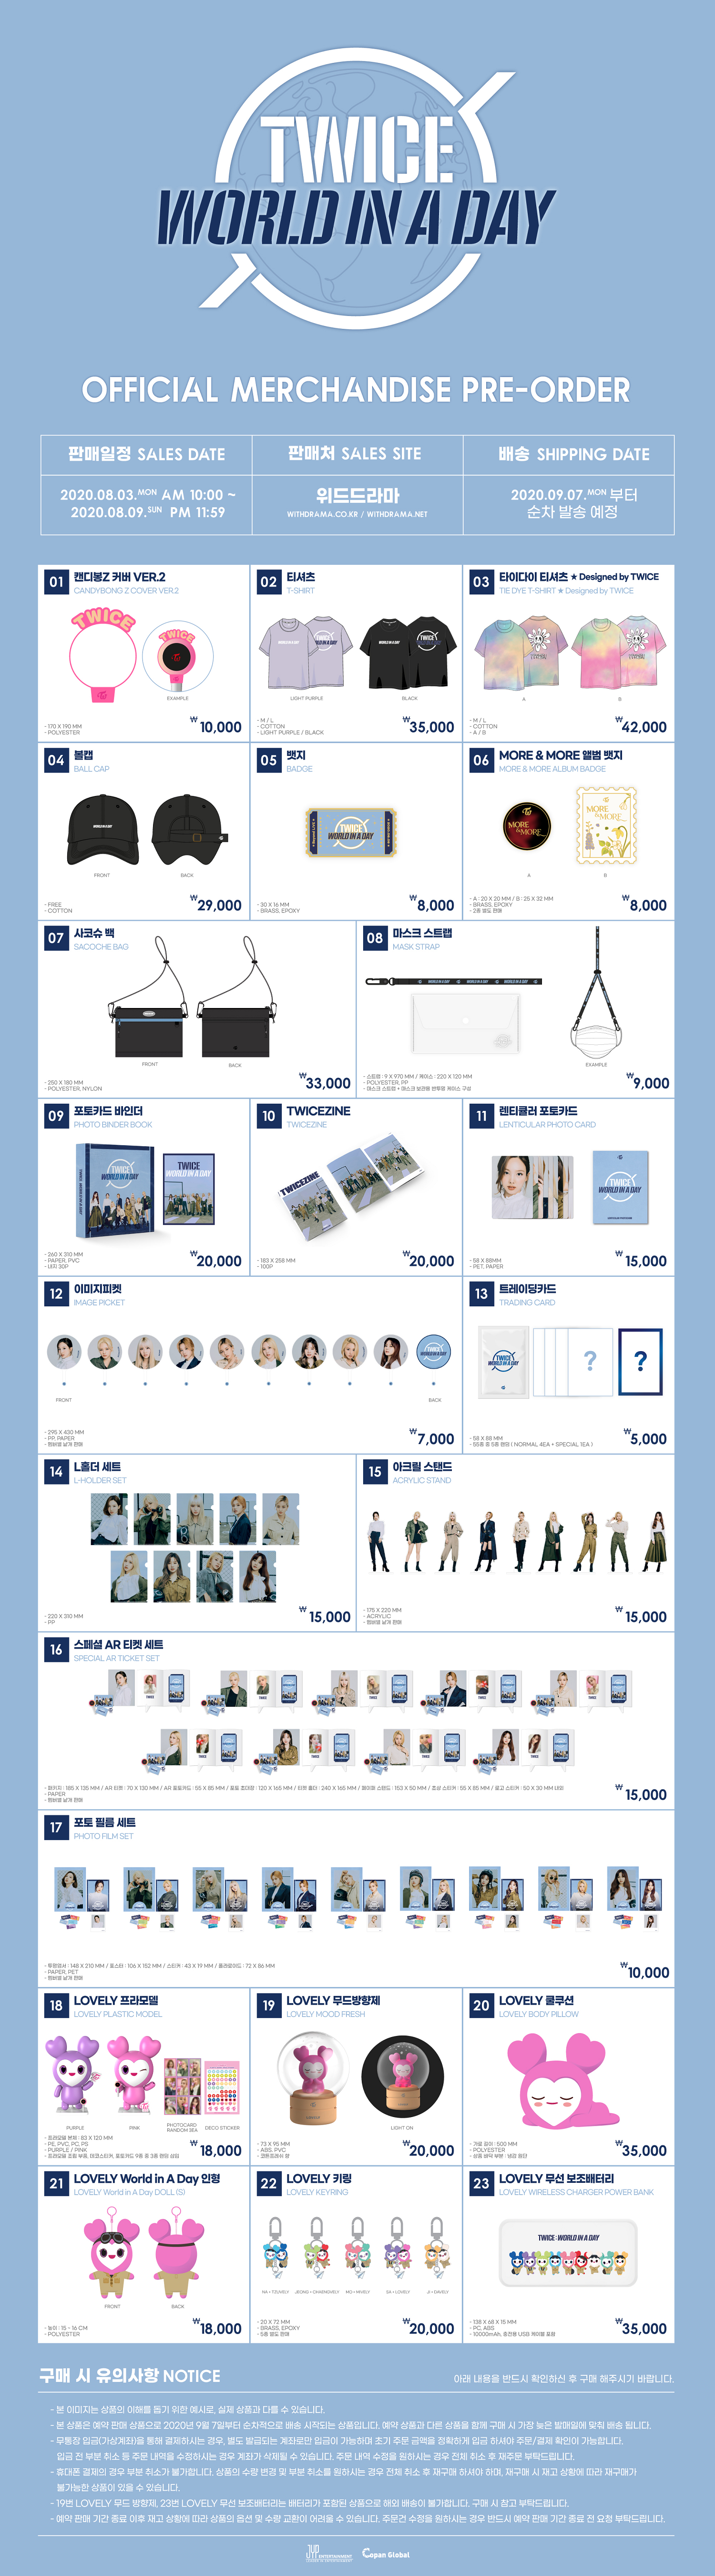 TWICE Beyond LIVE - TWICE World in A Day official MD pre-order.png